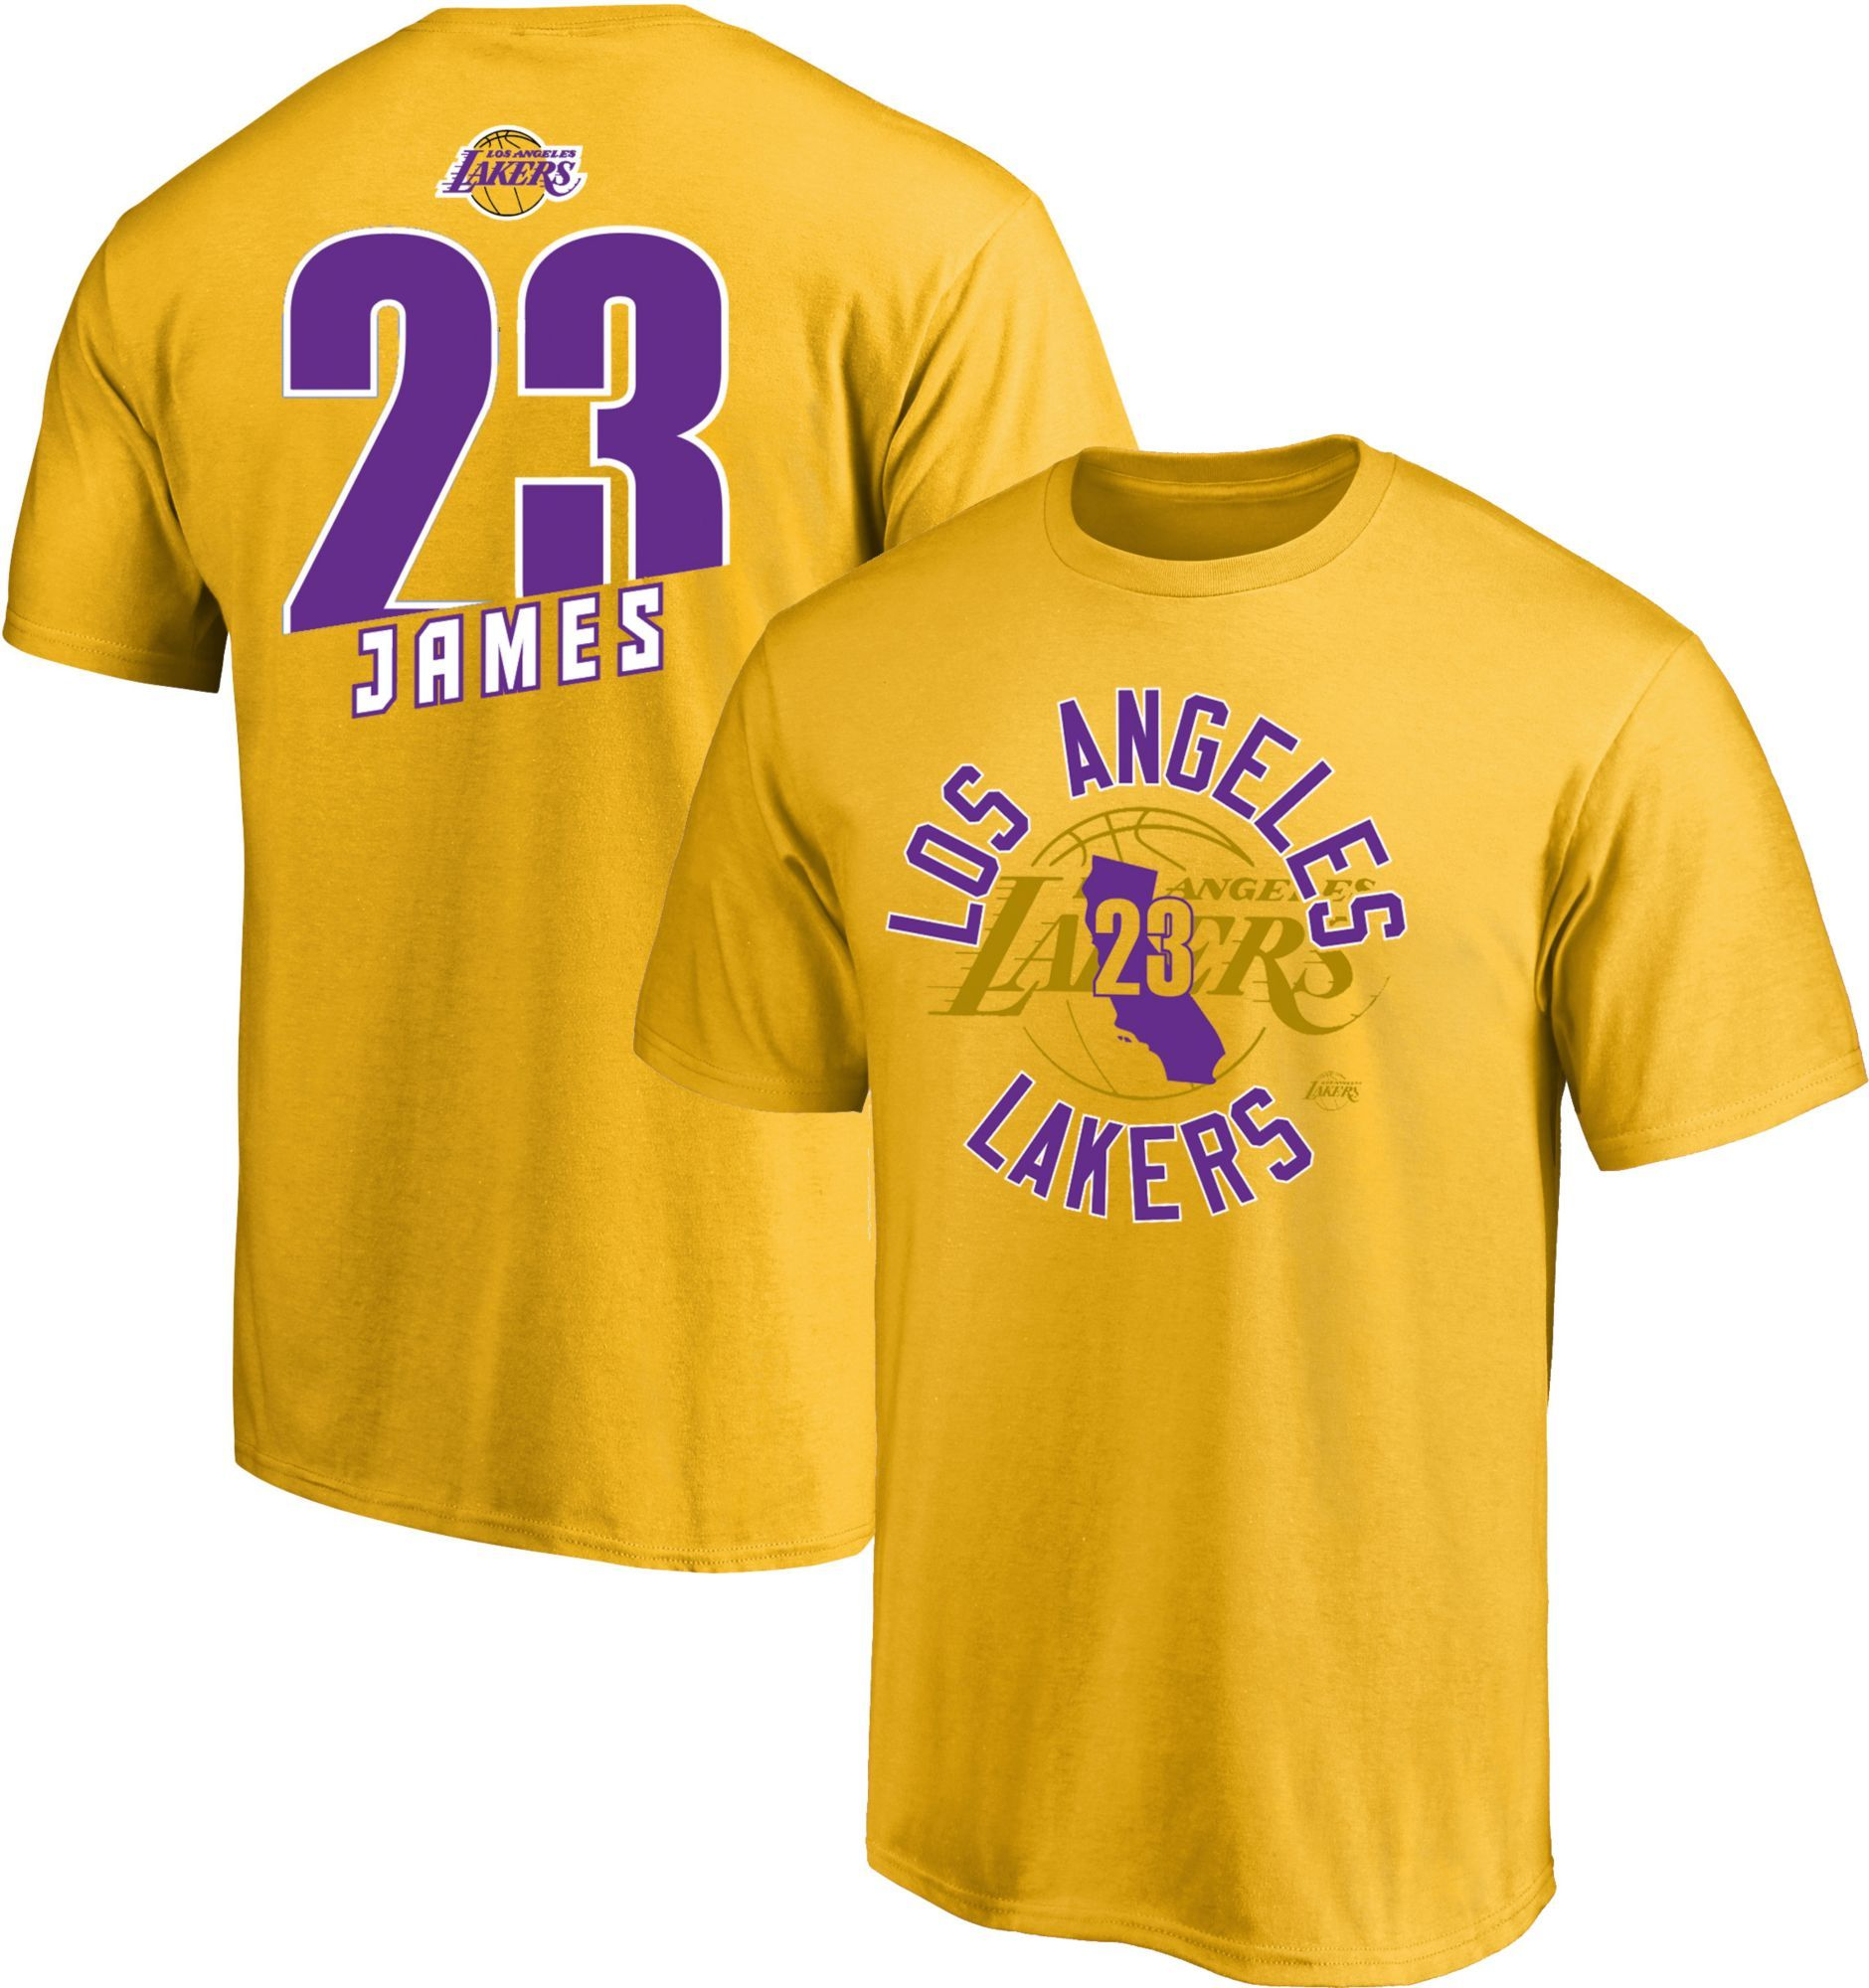 57083ea9d Majestic Men s Los Angeles Lakers LeBron James  23 Gold T-Shirt ...